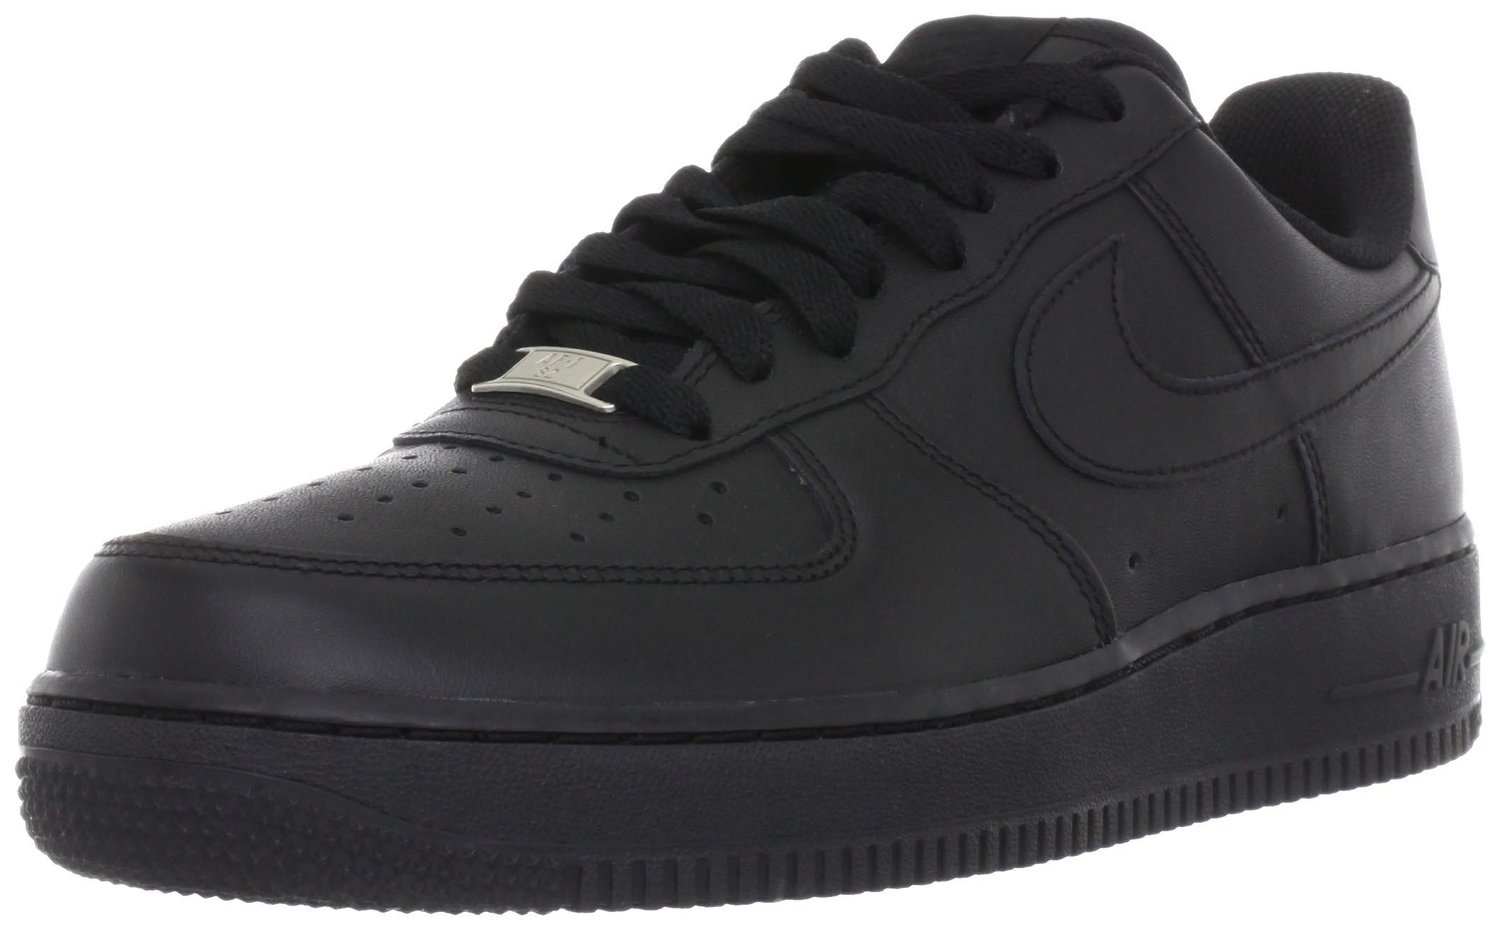 School bags online cyprus - Nike Air Force 1 07 Low Privesports Cyprus Online Shop